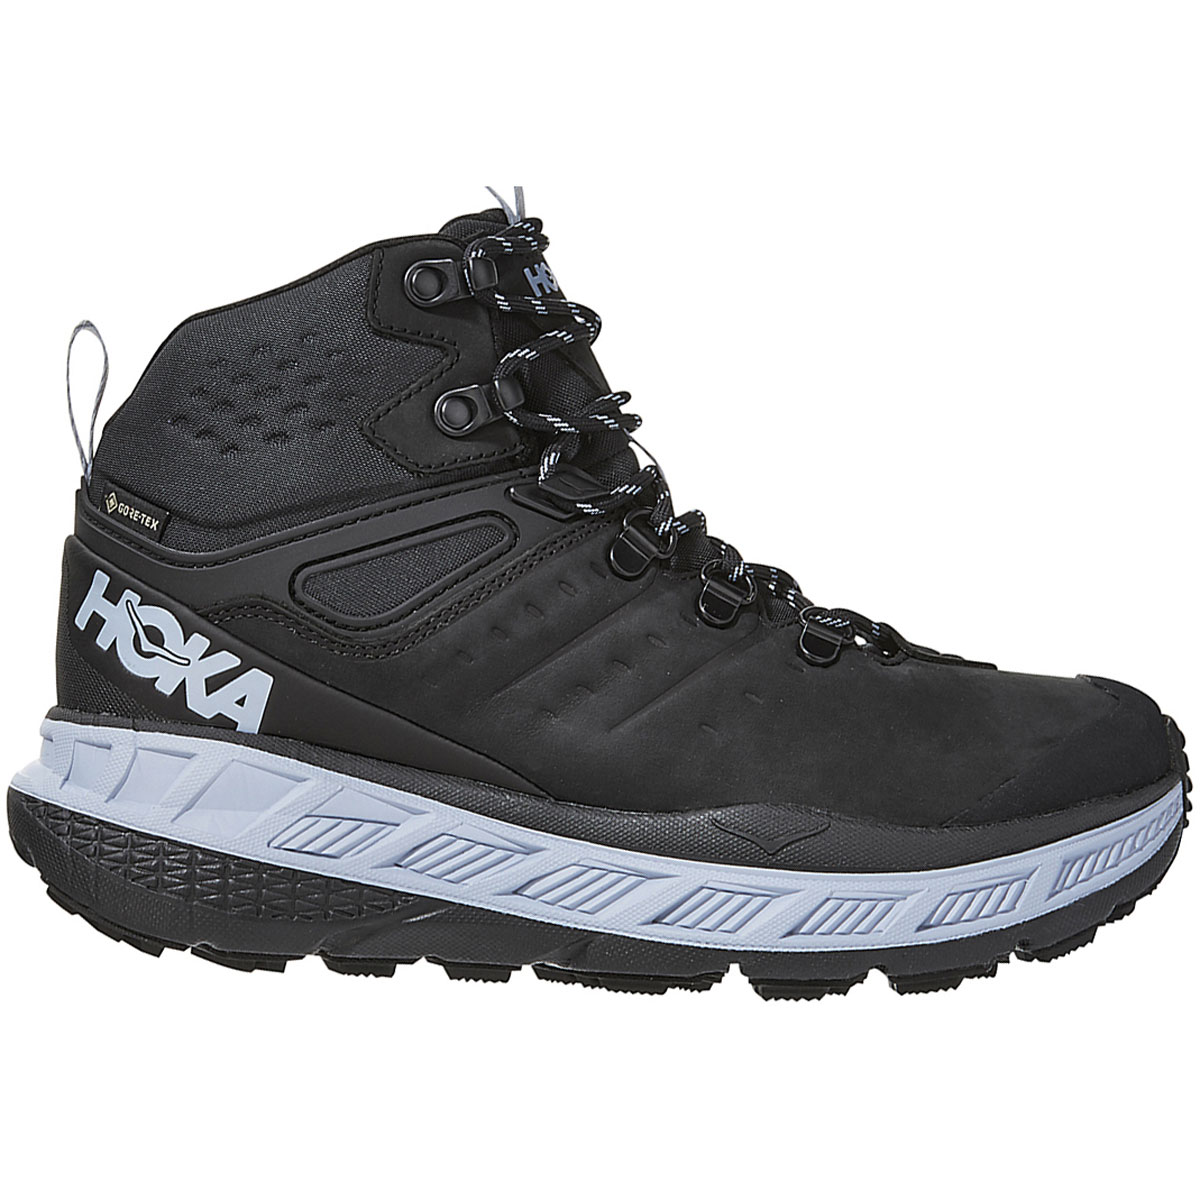 Women's Hoka One One Stinson Mid Gore-Tex Trail Running Shoe - Color: Anthracite/Heather - Size: 5 - Width: Regular, Anthracite/Heather, large, image 1